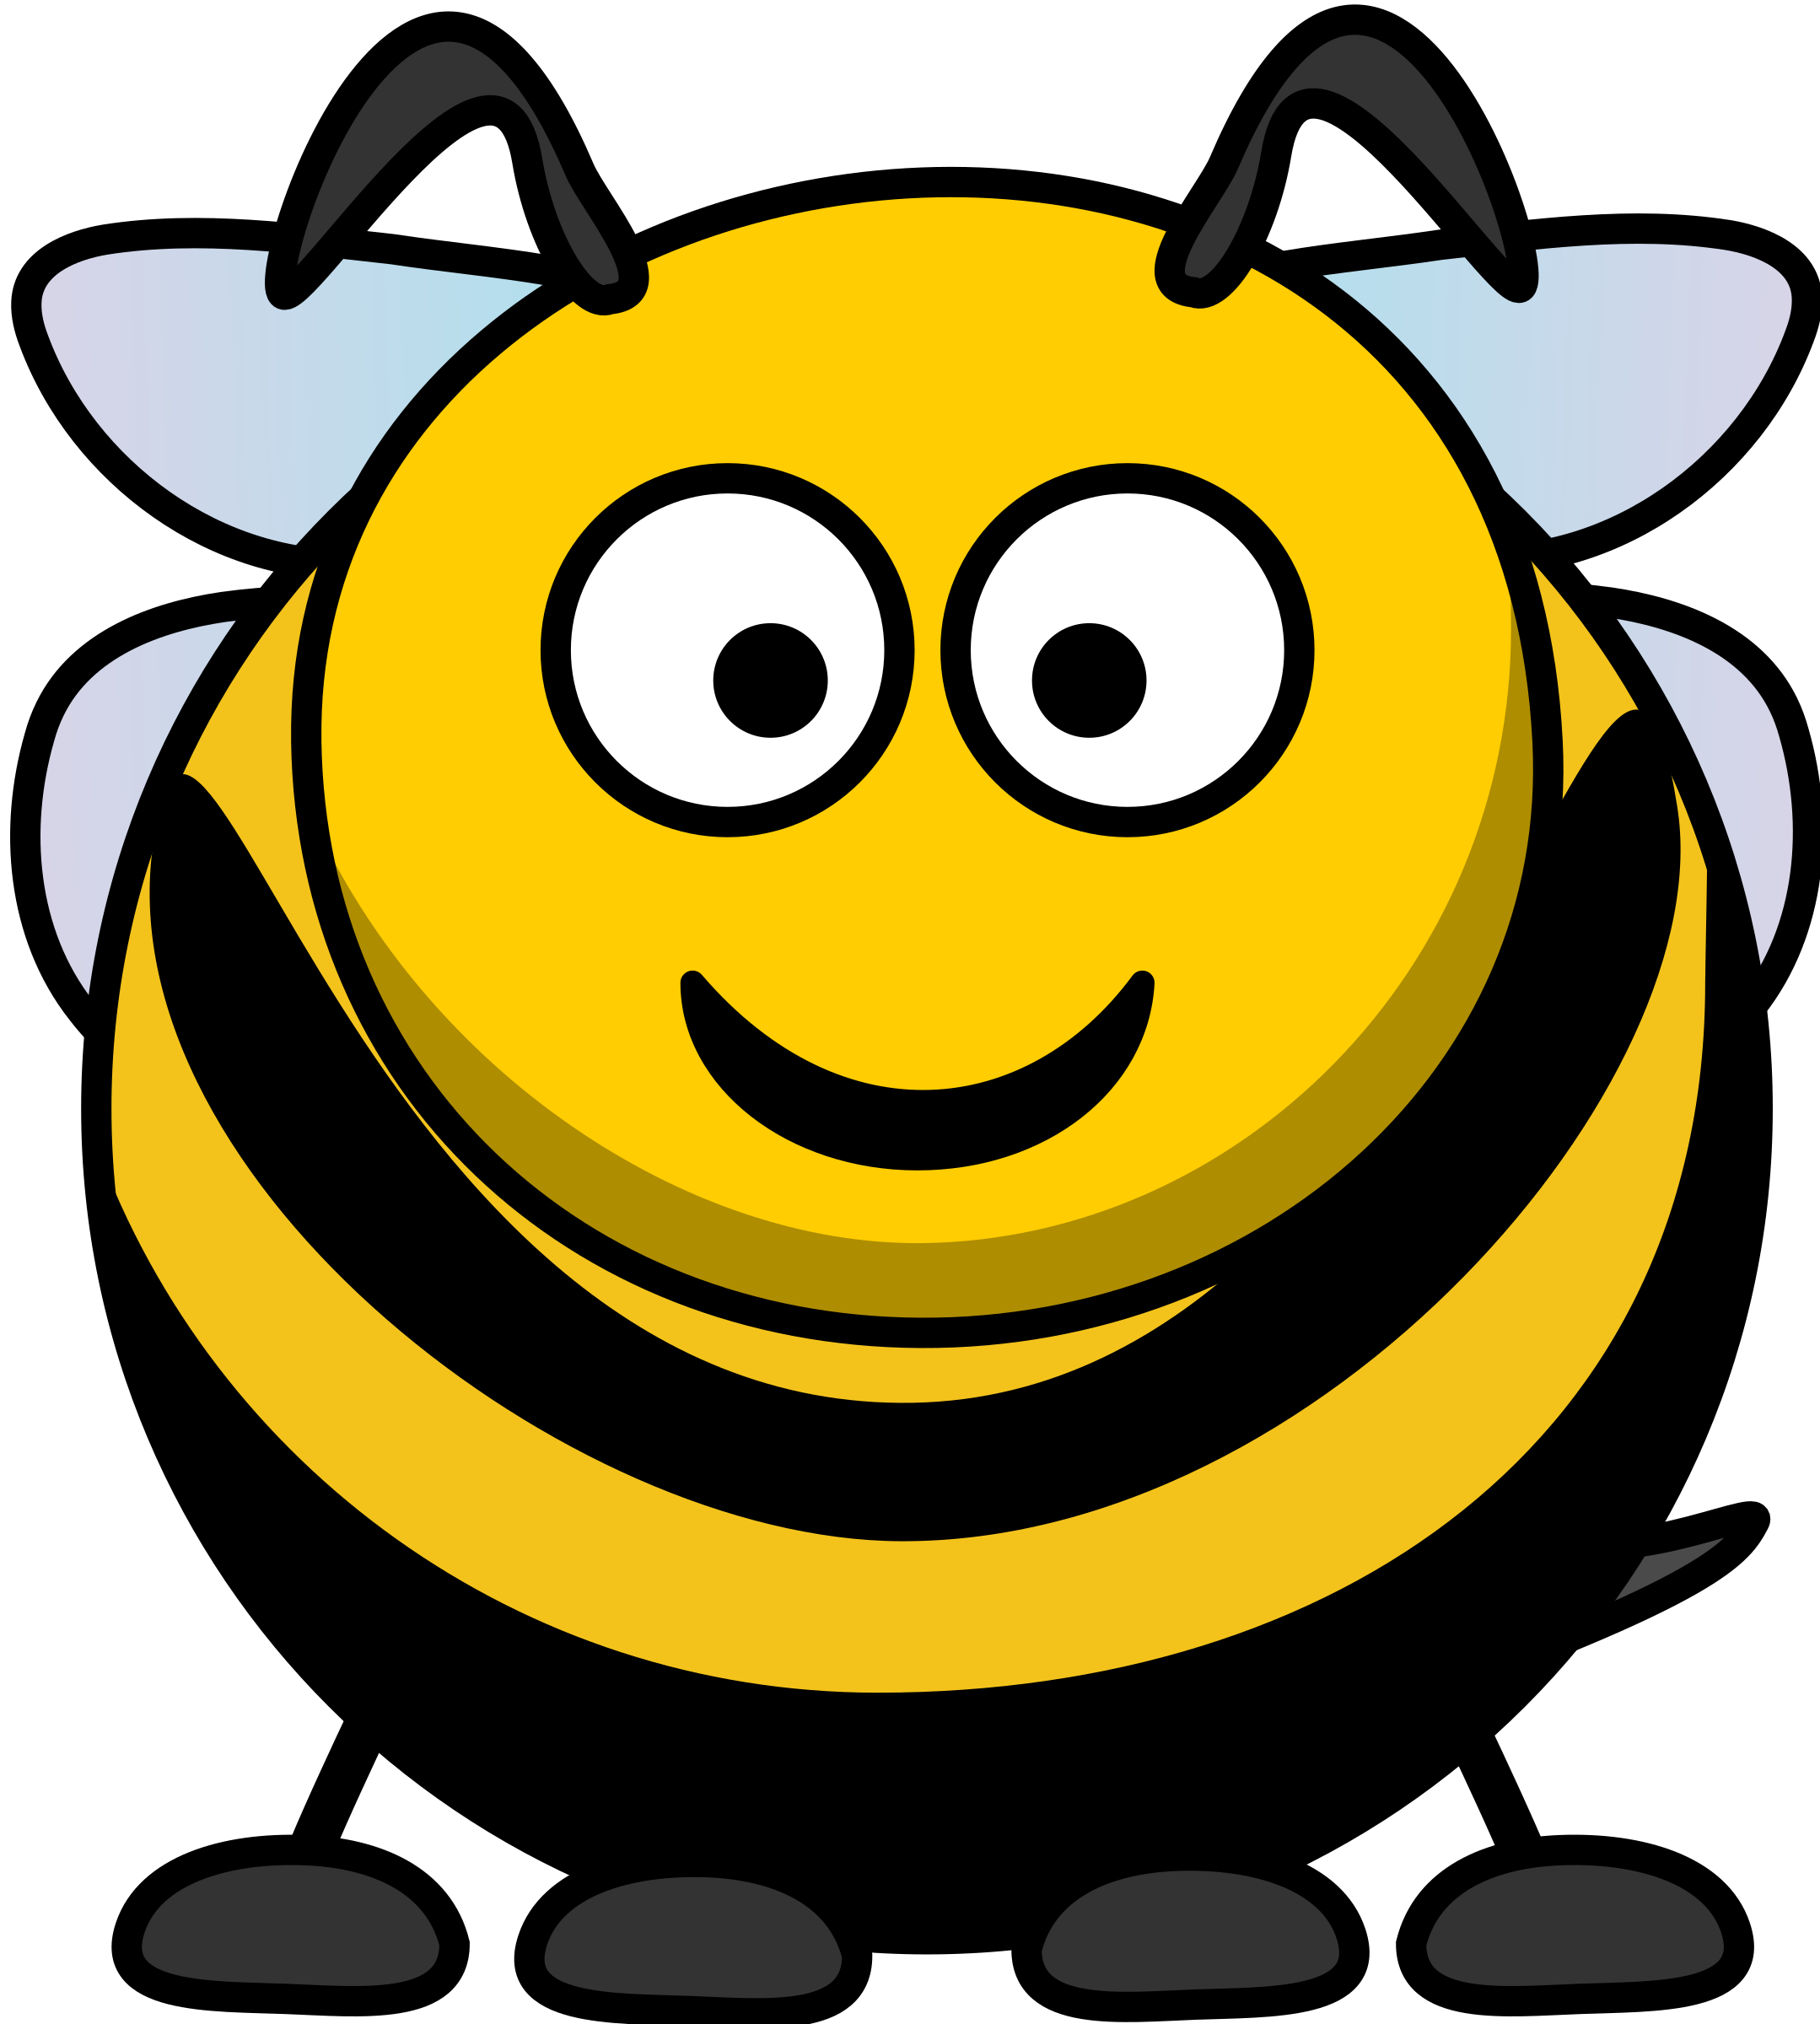 freeuse library Bumble clipart big bee. Cartoon image png